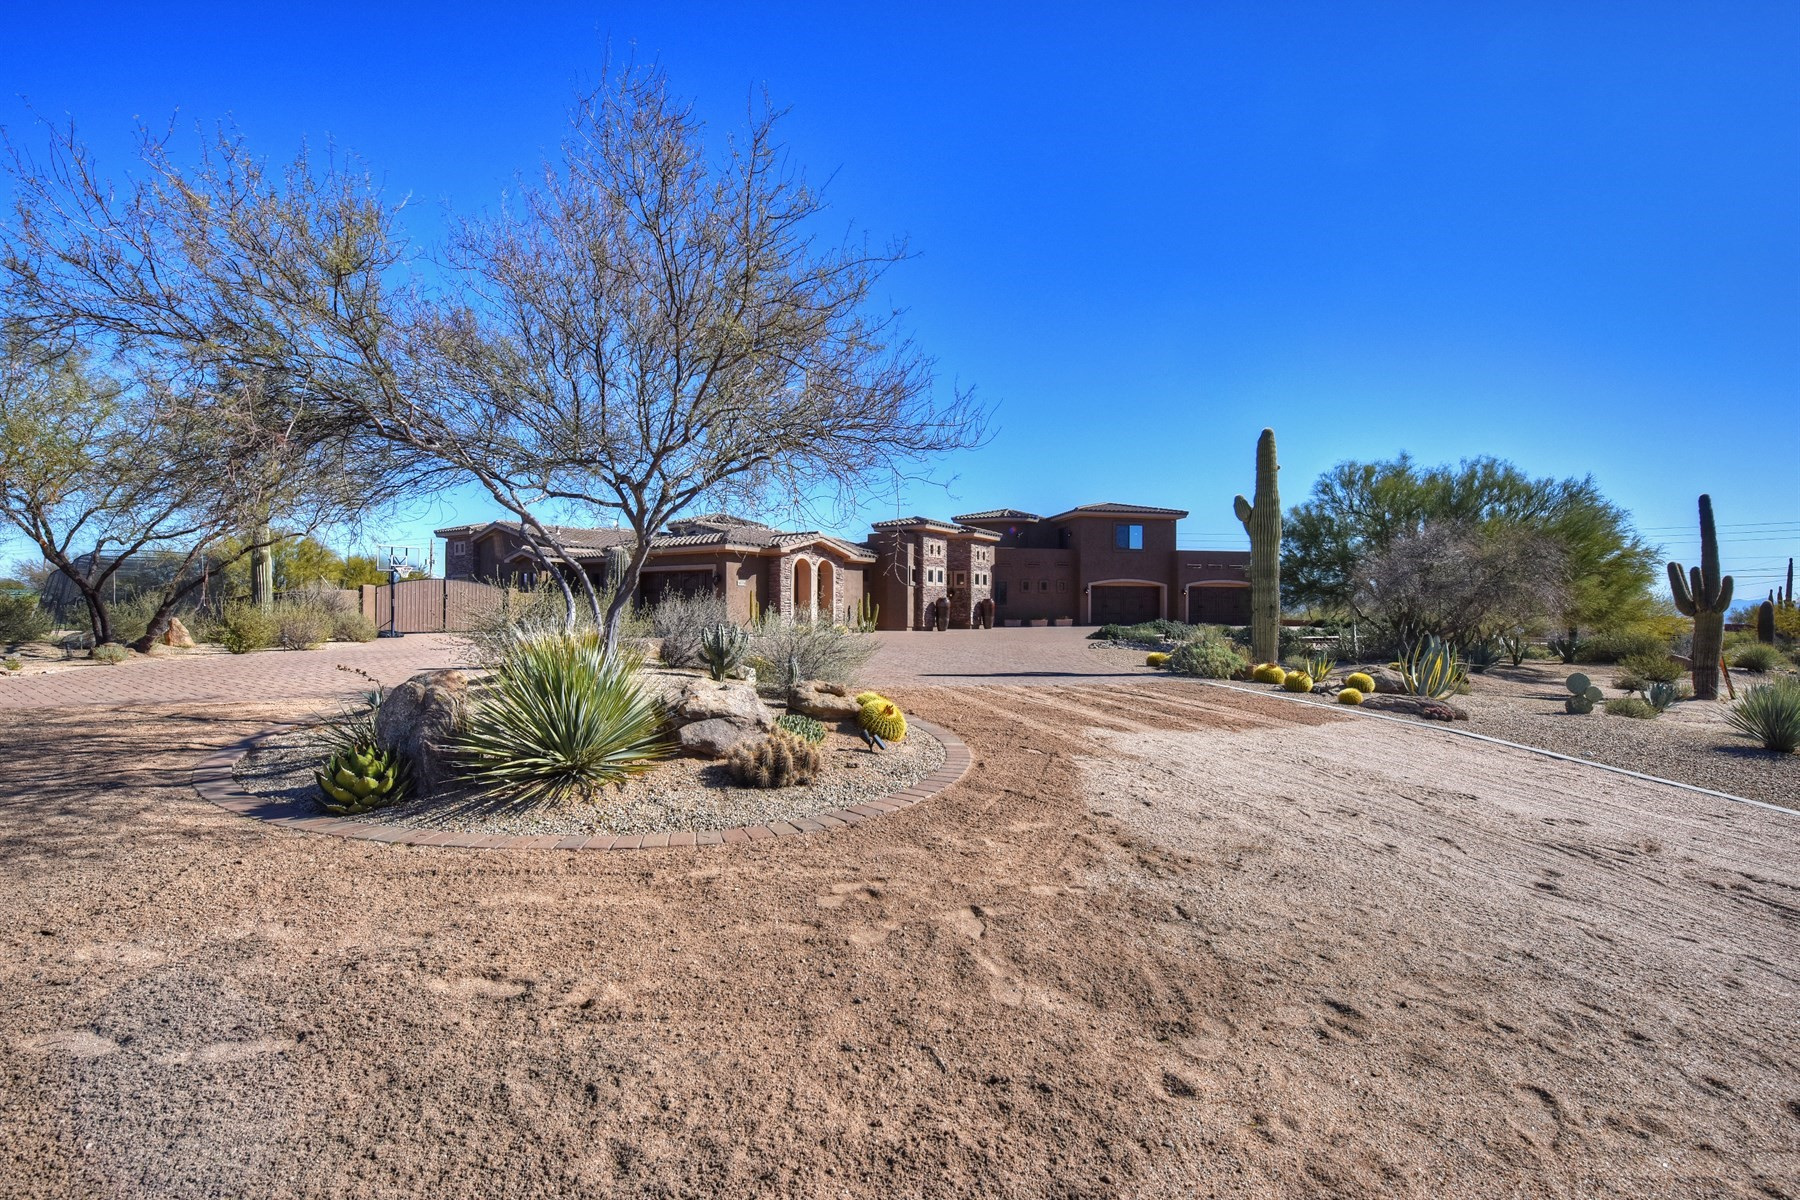 獨棟家庭住宅 為 出售 在 Impeccably maintained home in the gated community of Granite Mountain Ranch 14334 E Windstone Trl Scottsdale, 亞利桑那州, 85262 美國